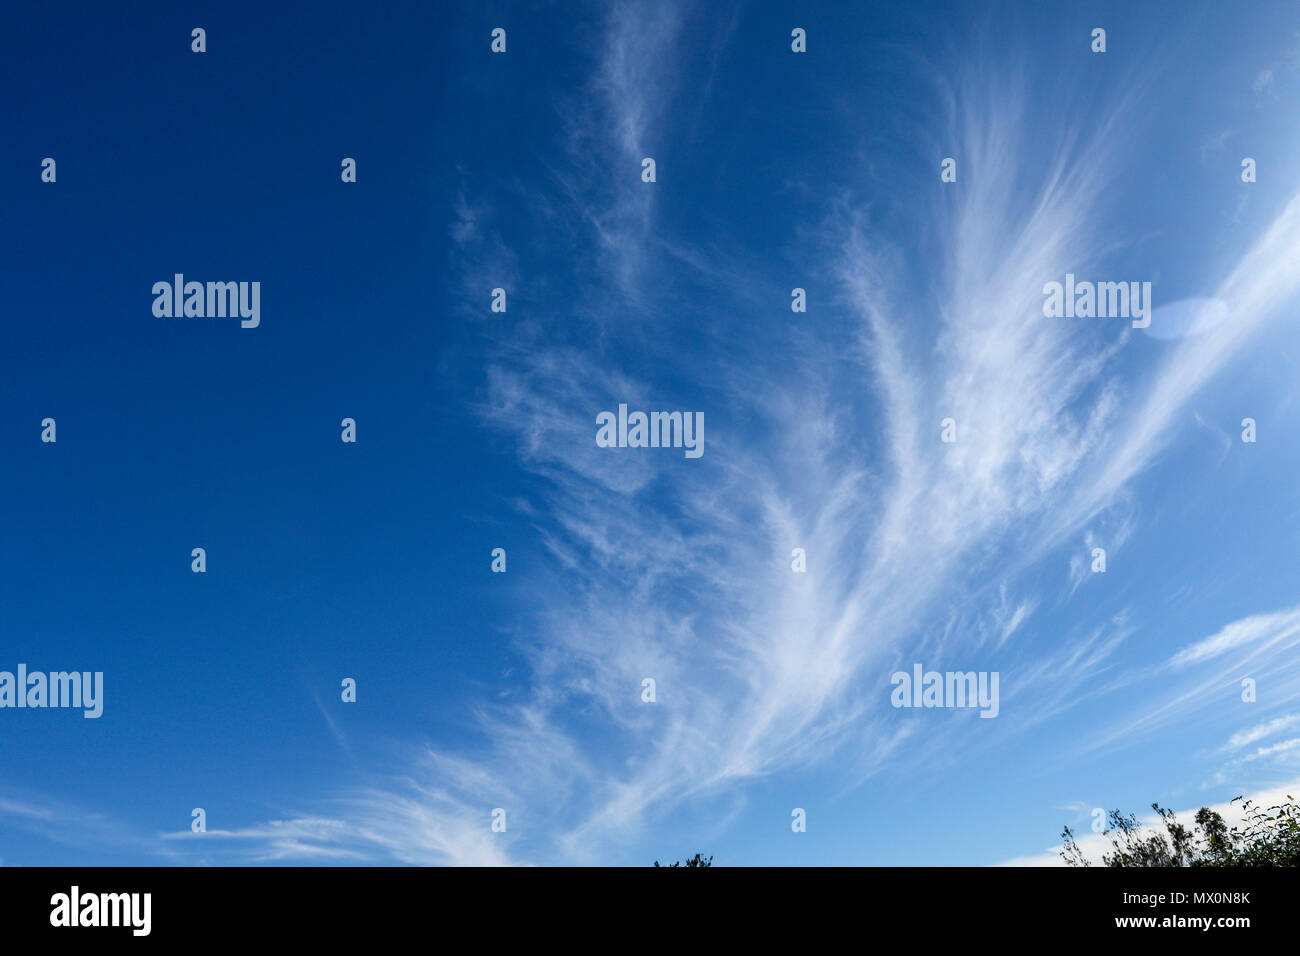 Wispy cloud in a blue sky abstract - Stock Image